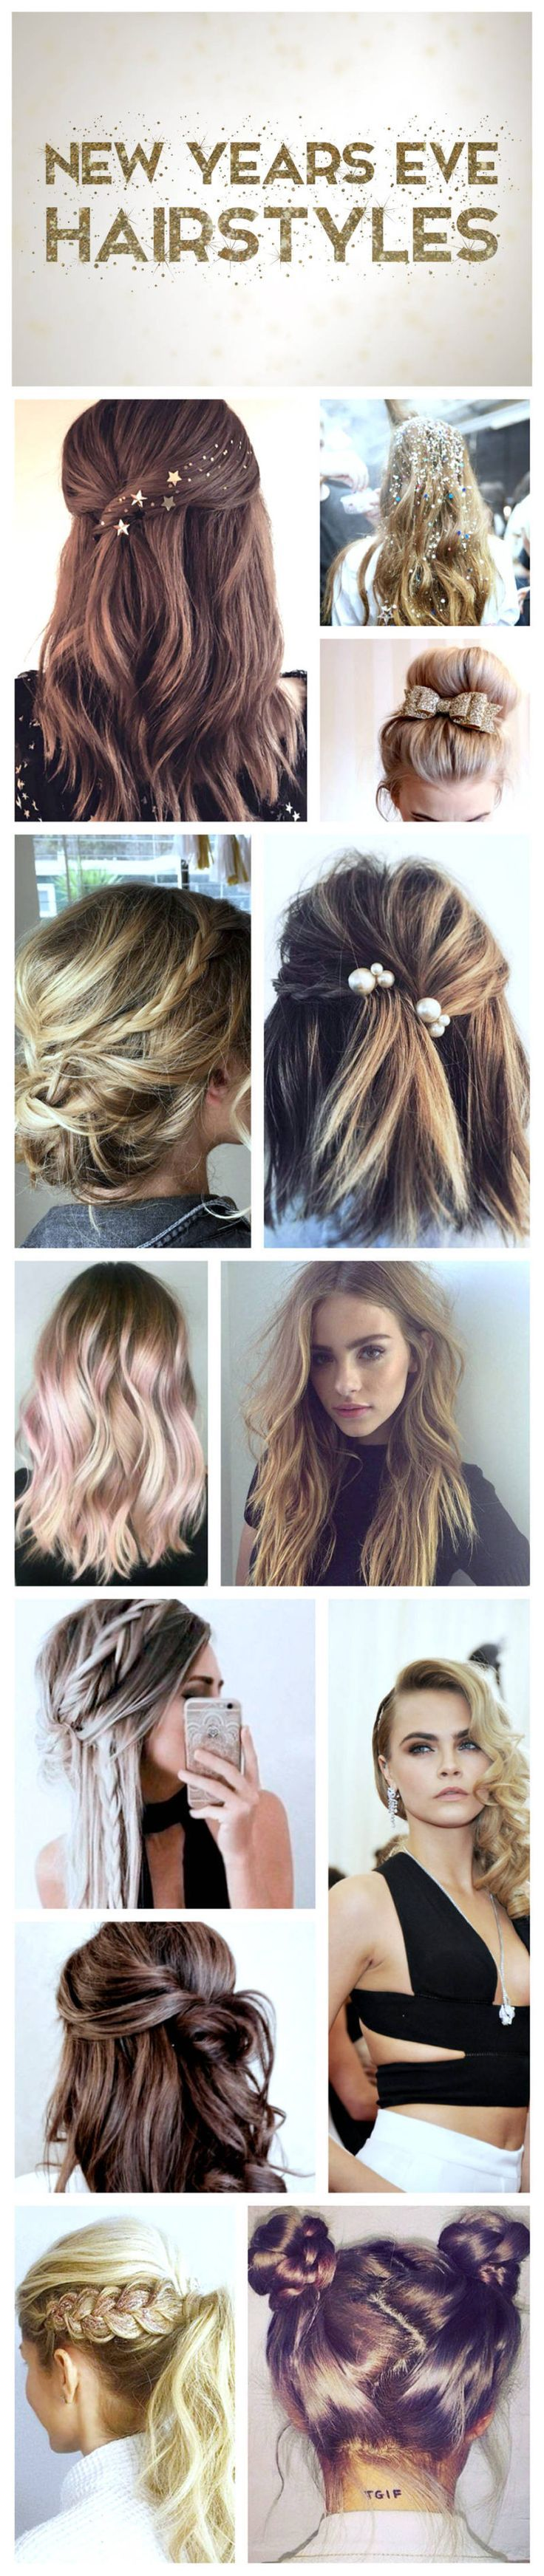 New Years Eve Hairstyle Ideas ✨